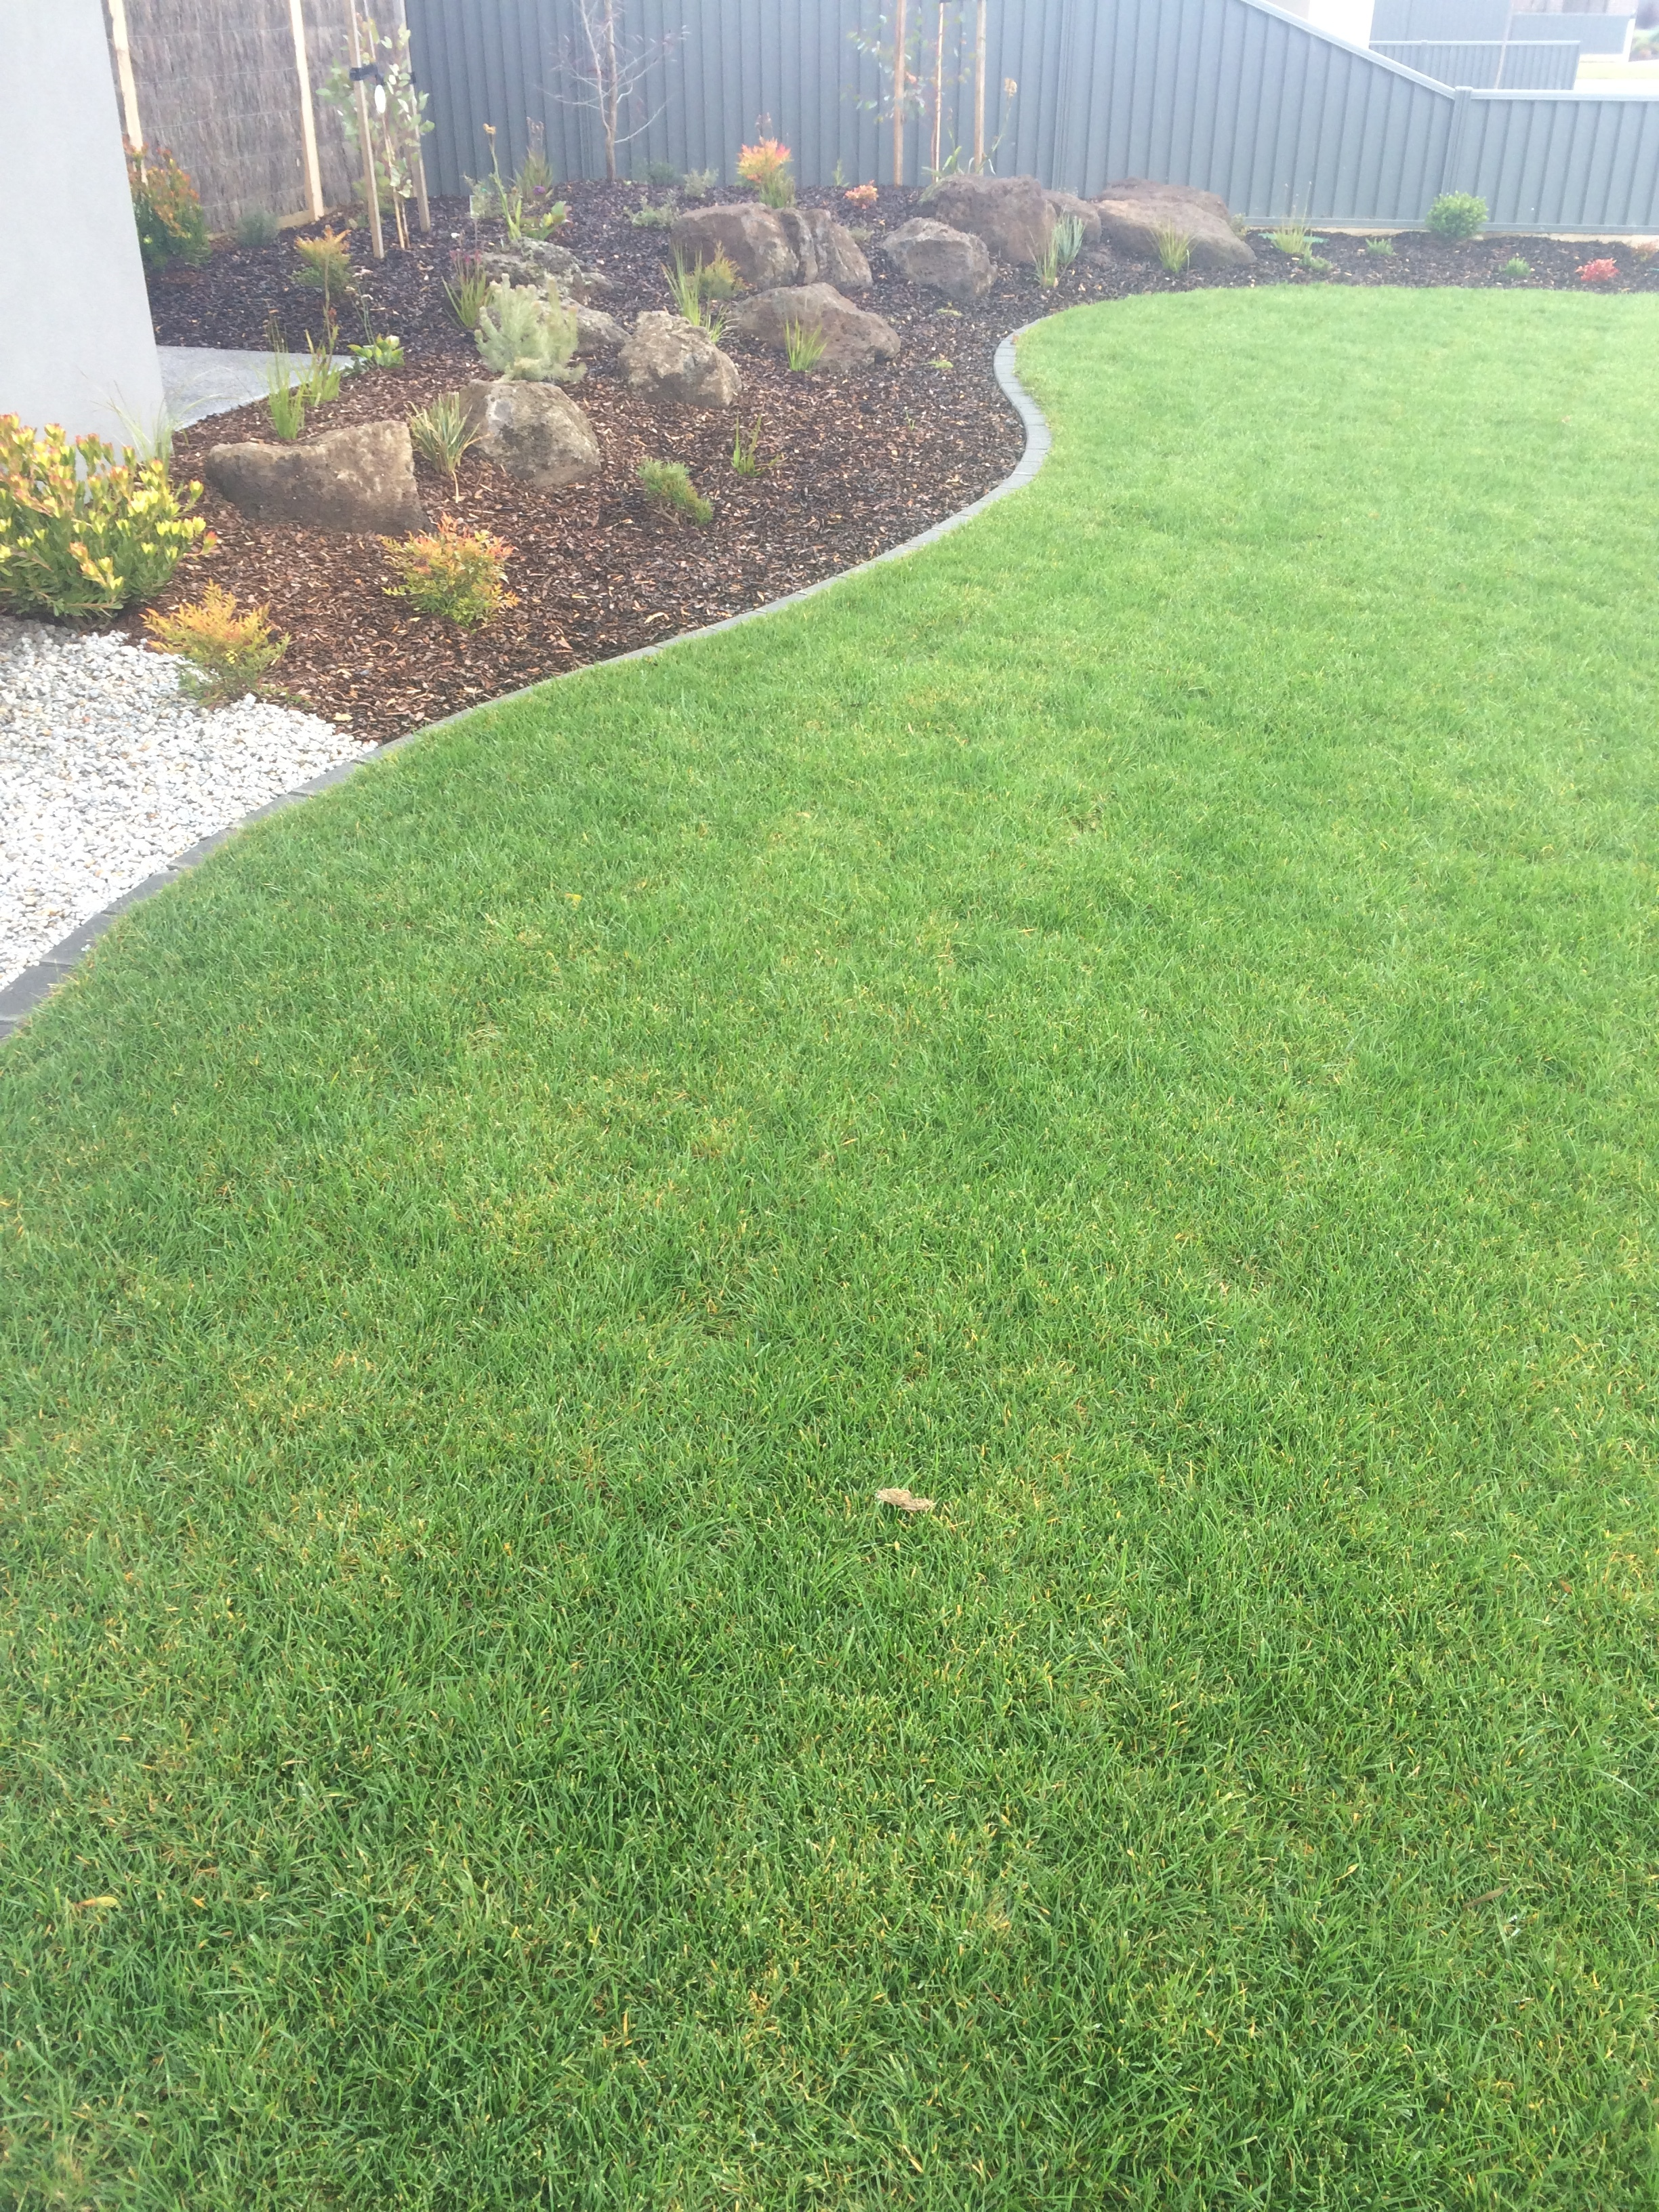 Garden and instant turf with bluestone edging